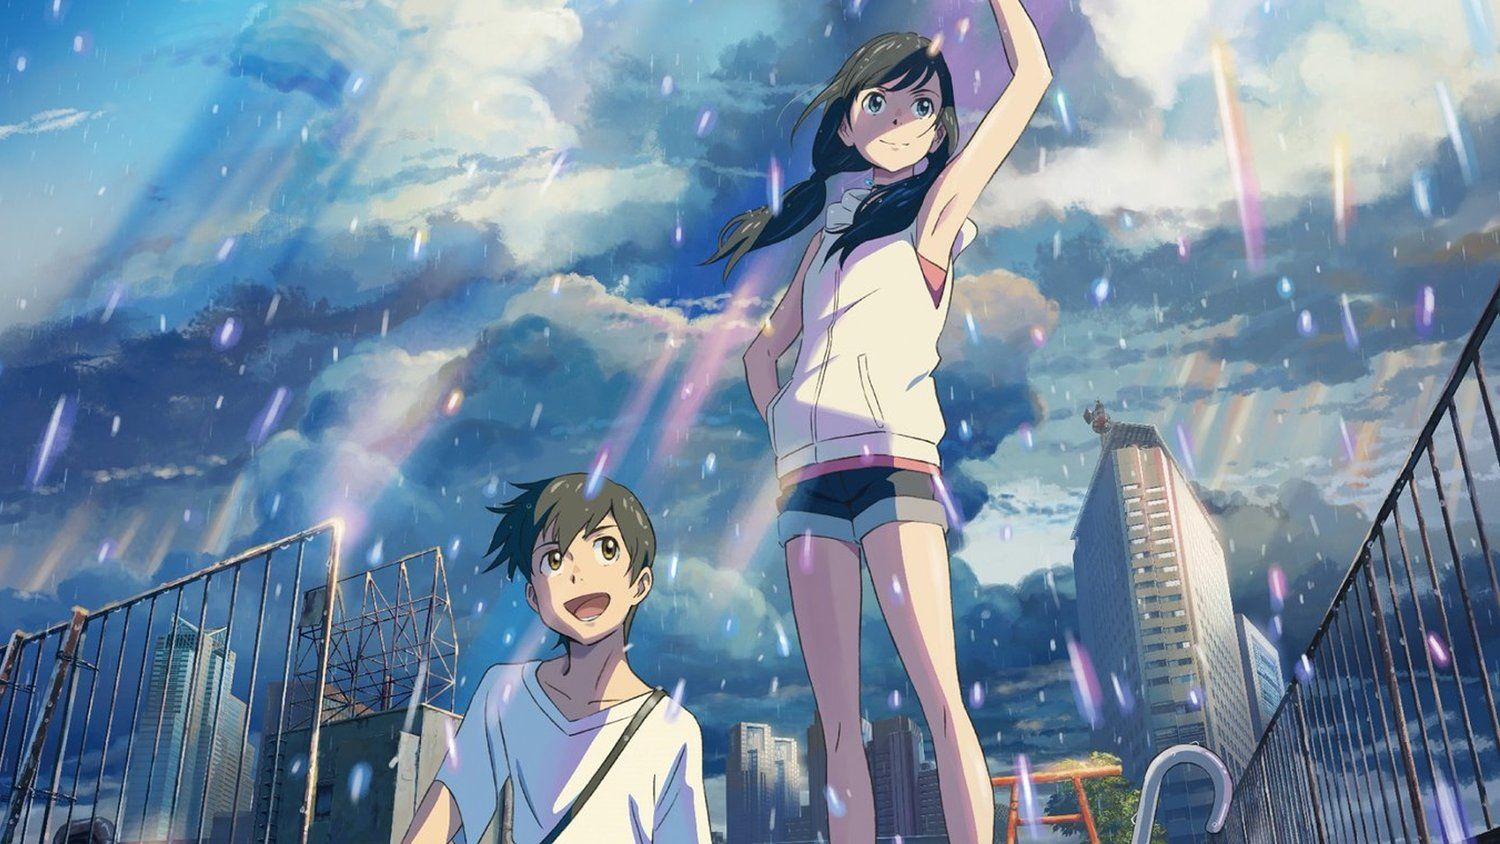 Full Trailer Released For The Anime Film WEATHERING WITH